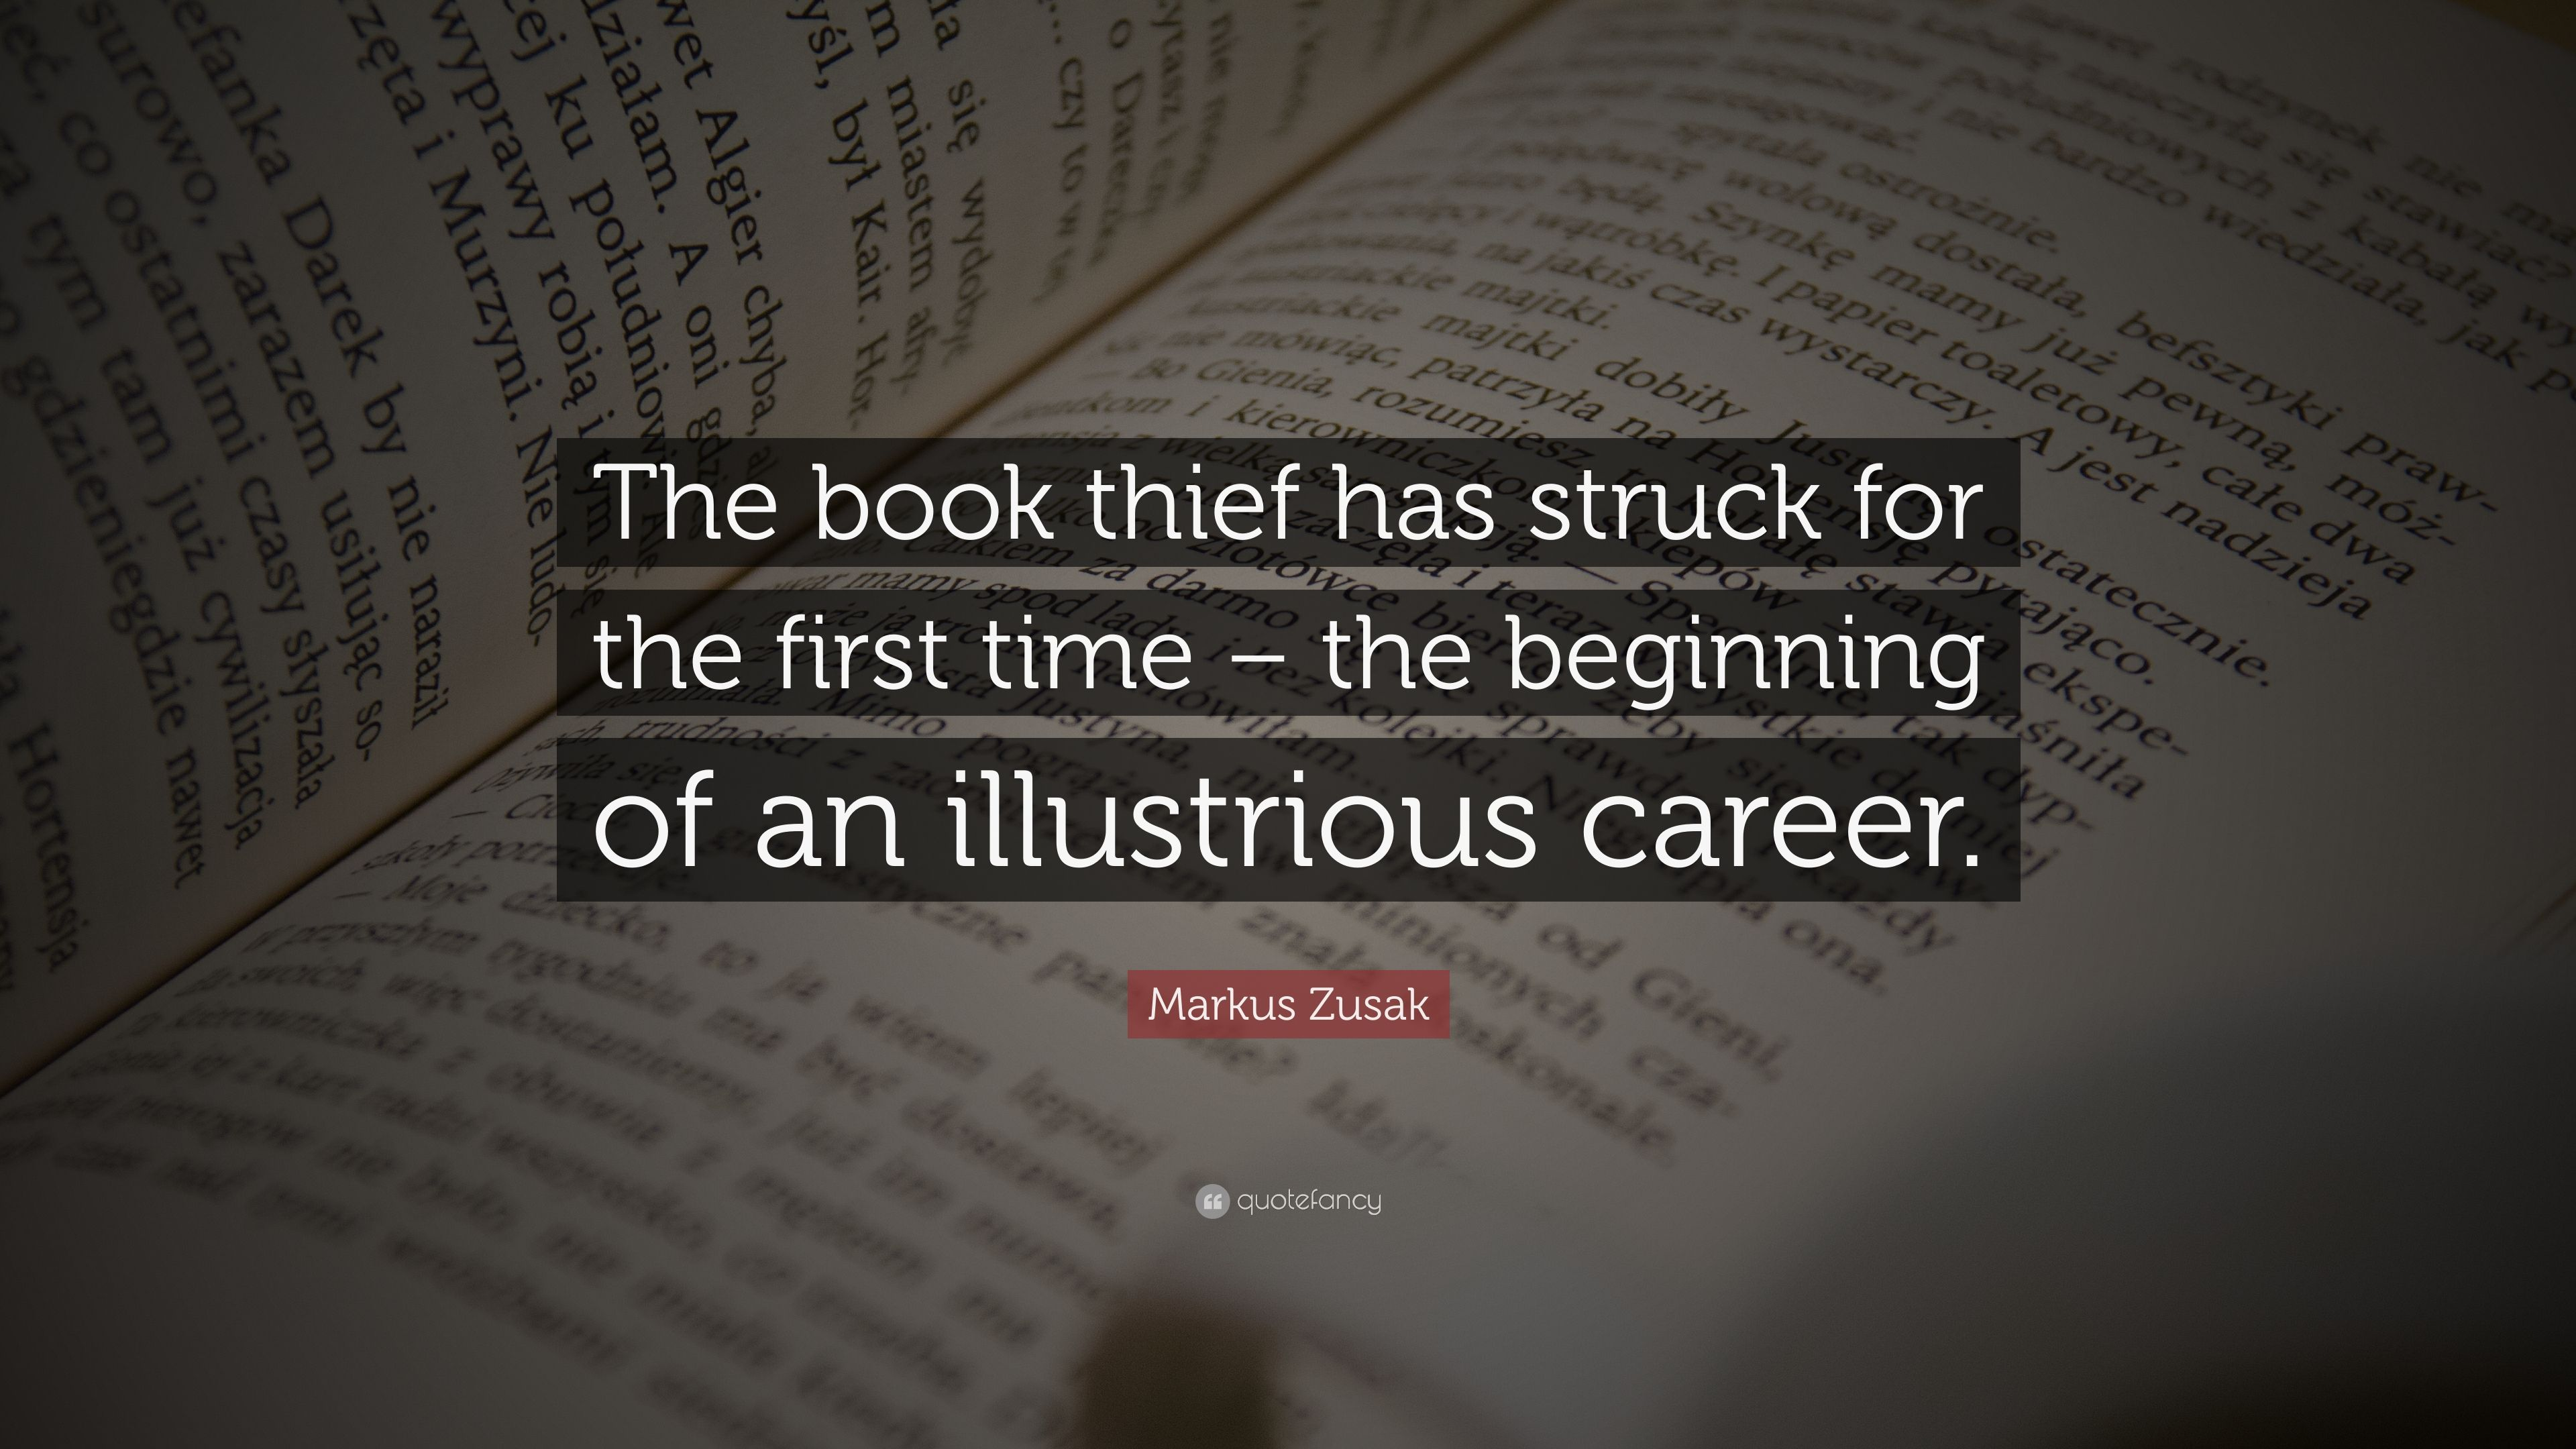 Markus Zusak Quote: U201cThe Book Thief Has Struck For The First Time U2013 The